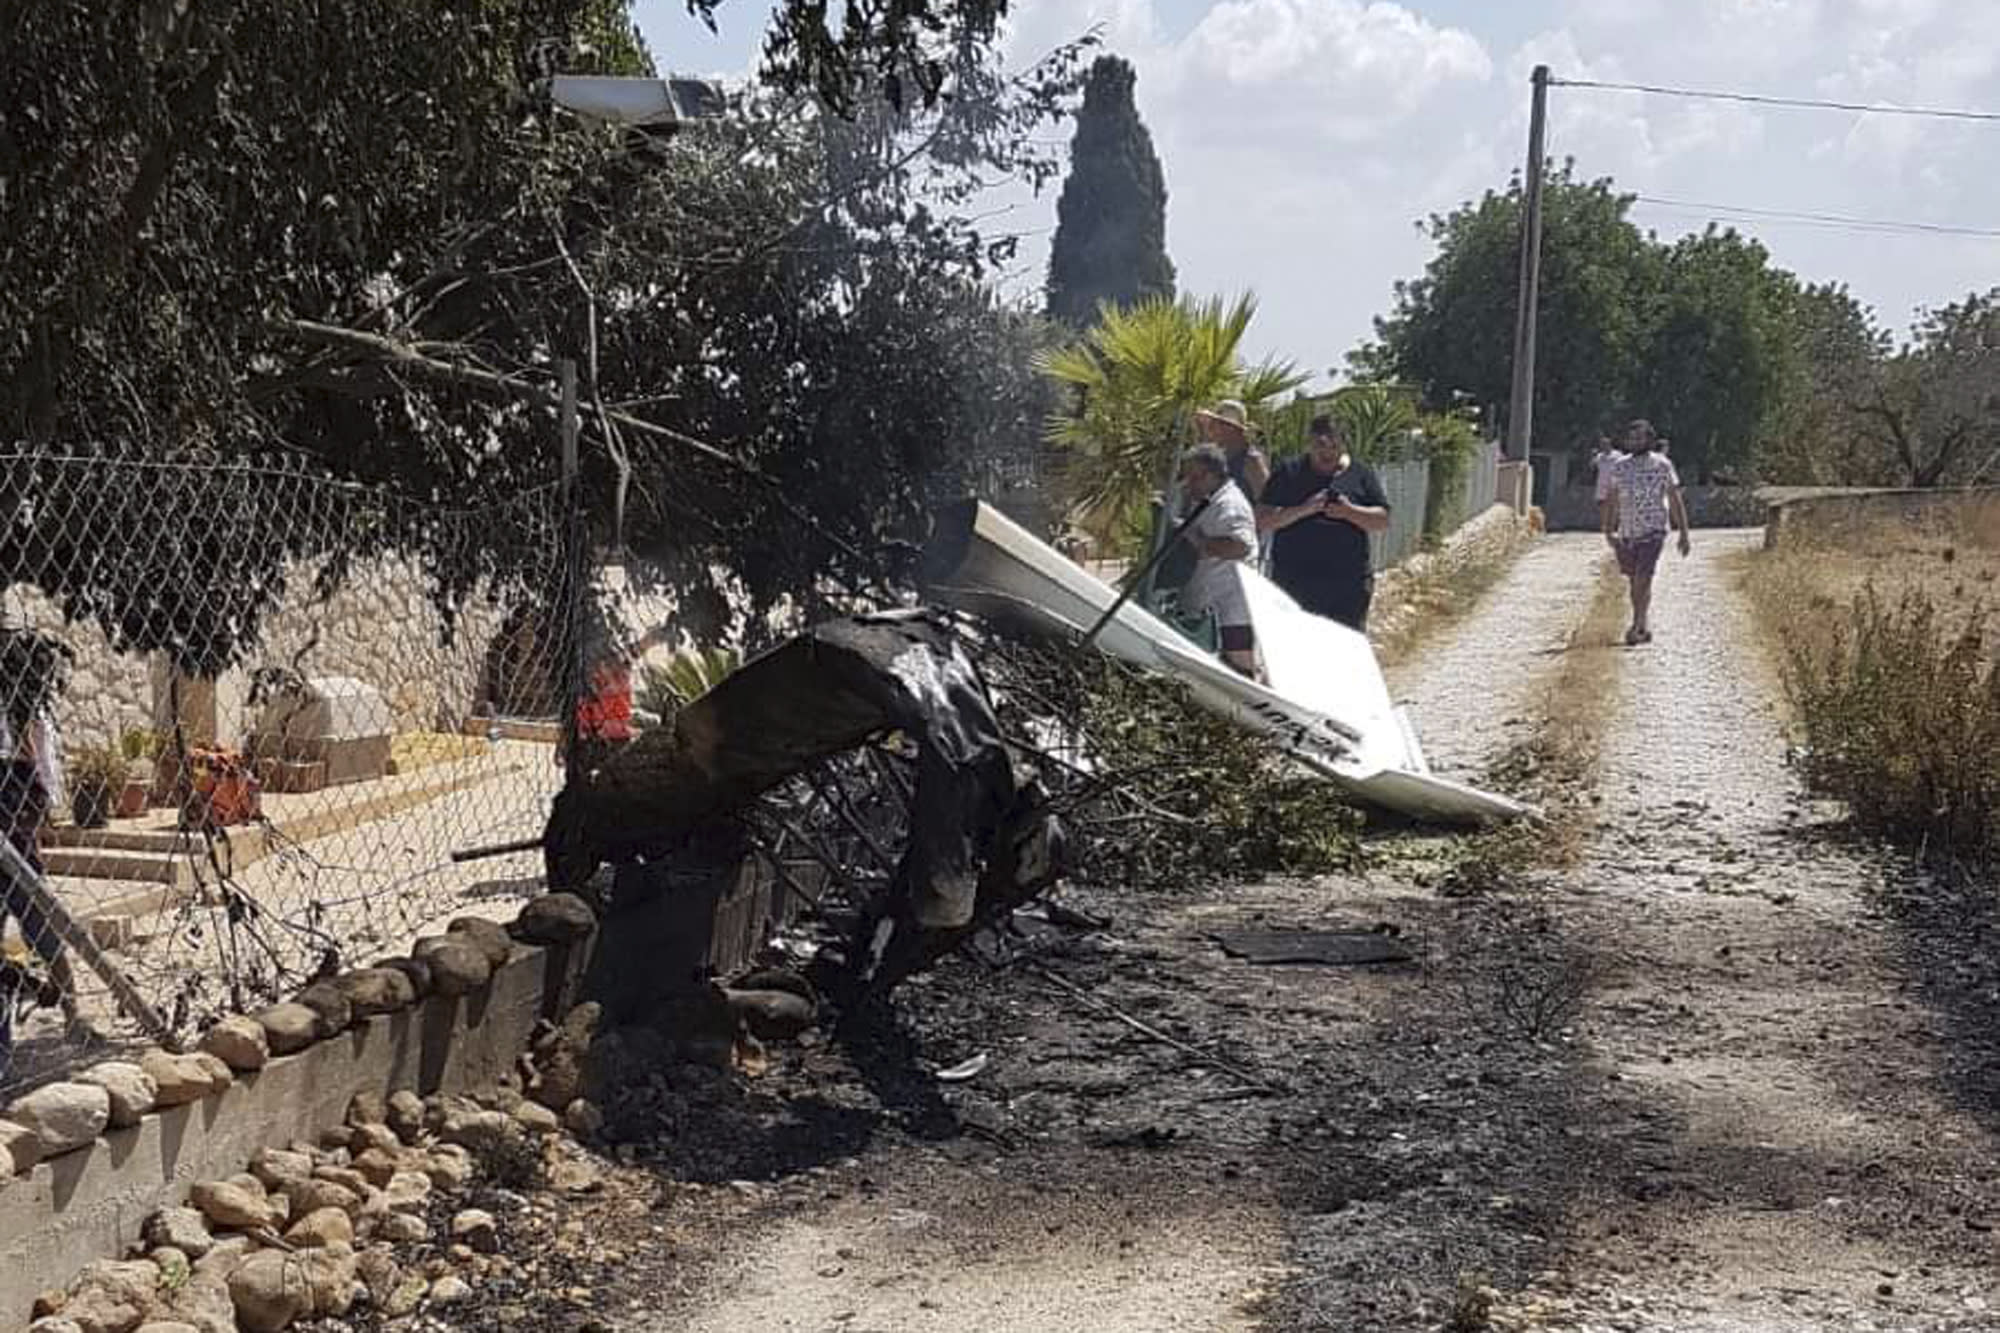 Helicopter, small plane crash in Spain's Mallorca; 5 dead